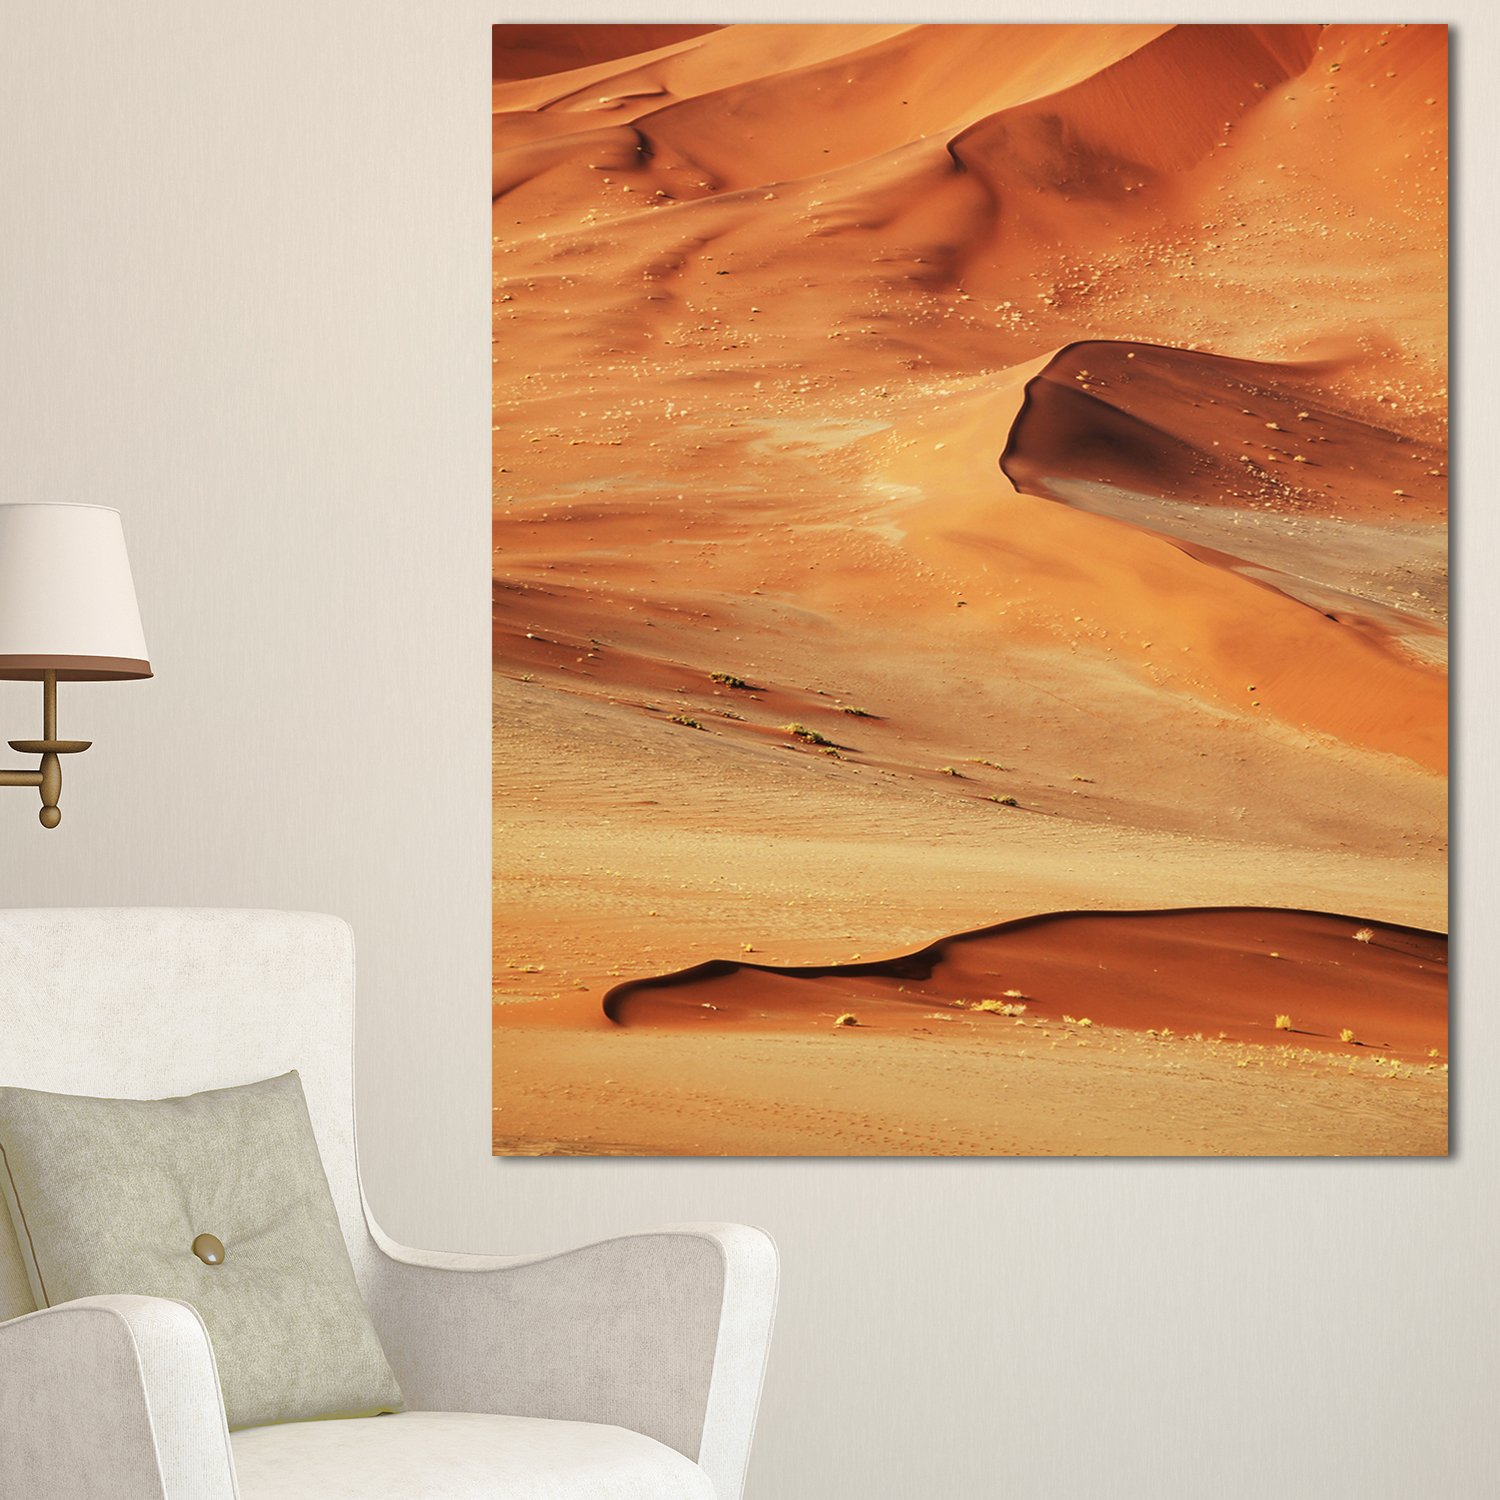 Designart Mt12768 40 48 Beautiful Brown Sand Desert Extra Large Landscape Metal Wall Art 40x48 Brown 40x48 Amazon In Home Kitchen